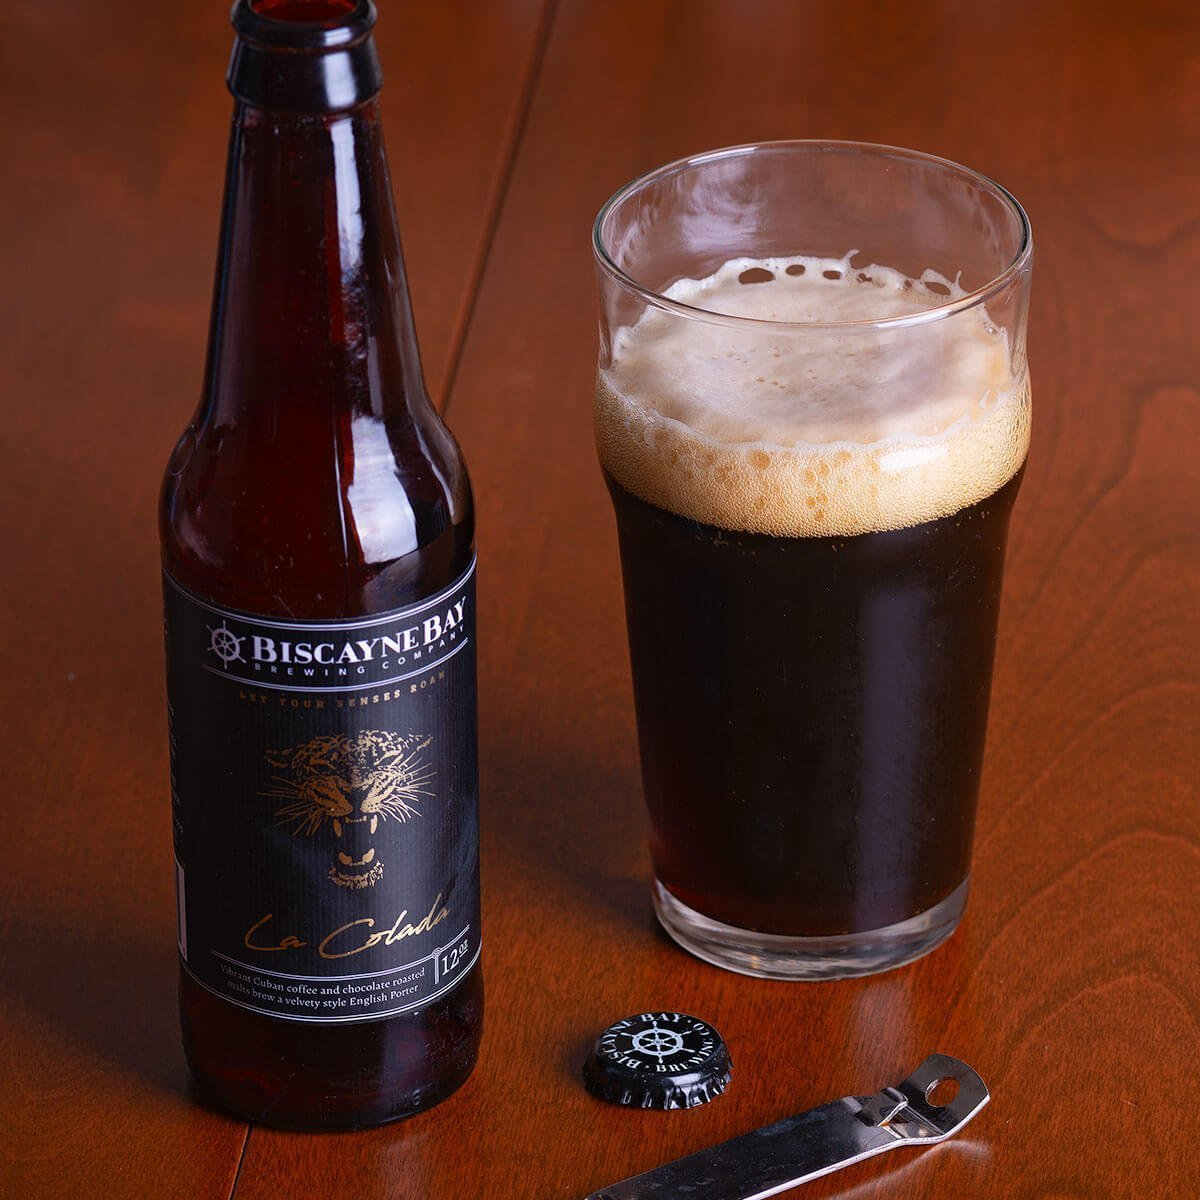 La Colada is an English-style Porter brewed by Biscayne Bay Brewing Company that blends Cuban coffee, lactose, chocolate and toasted malts.